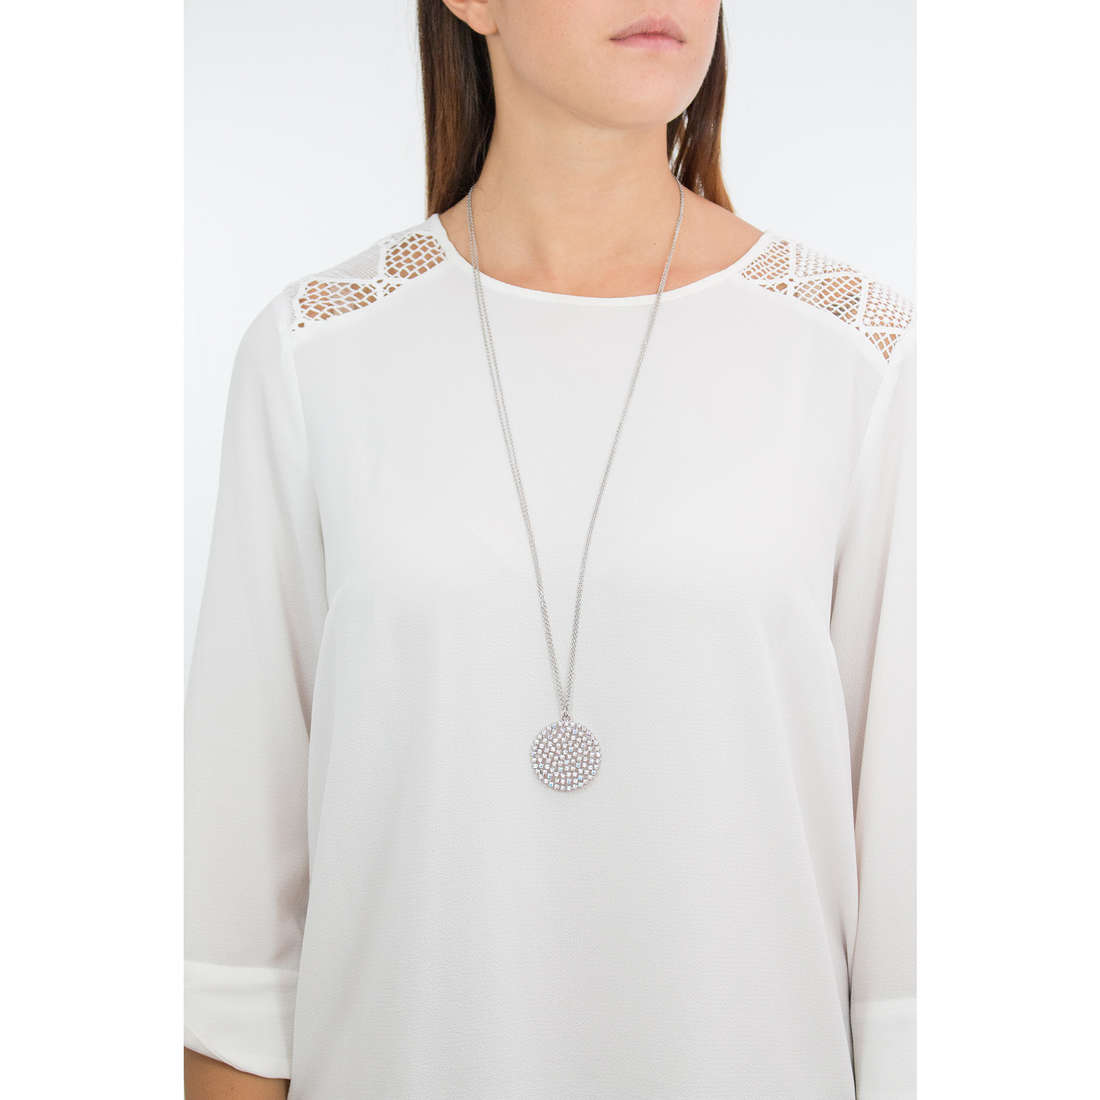 Luca Barra necklaces woman LBCK1067 photo wearing